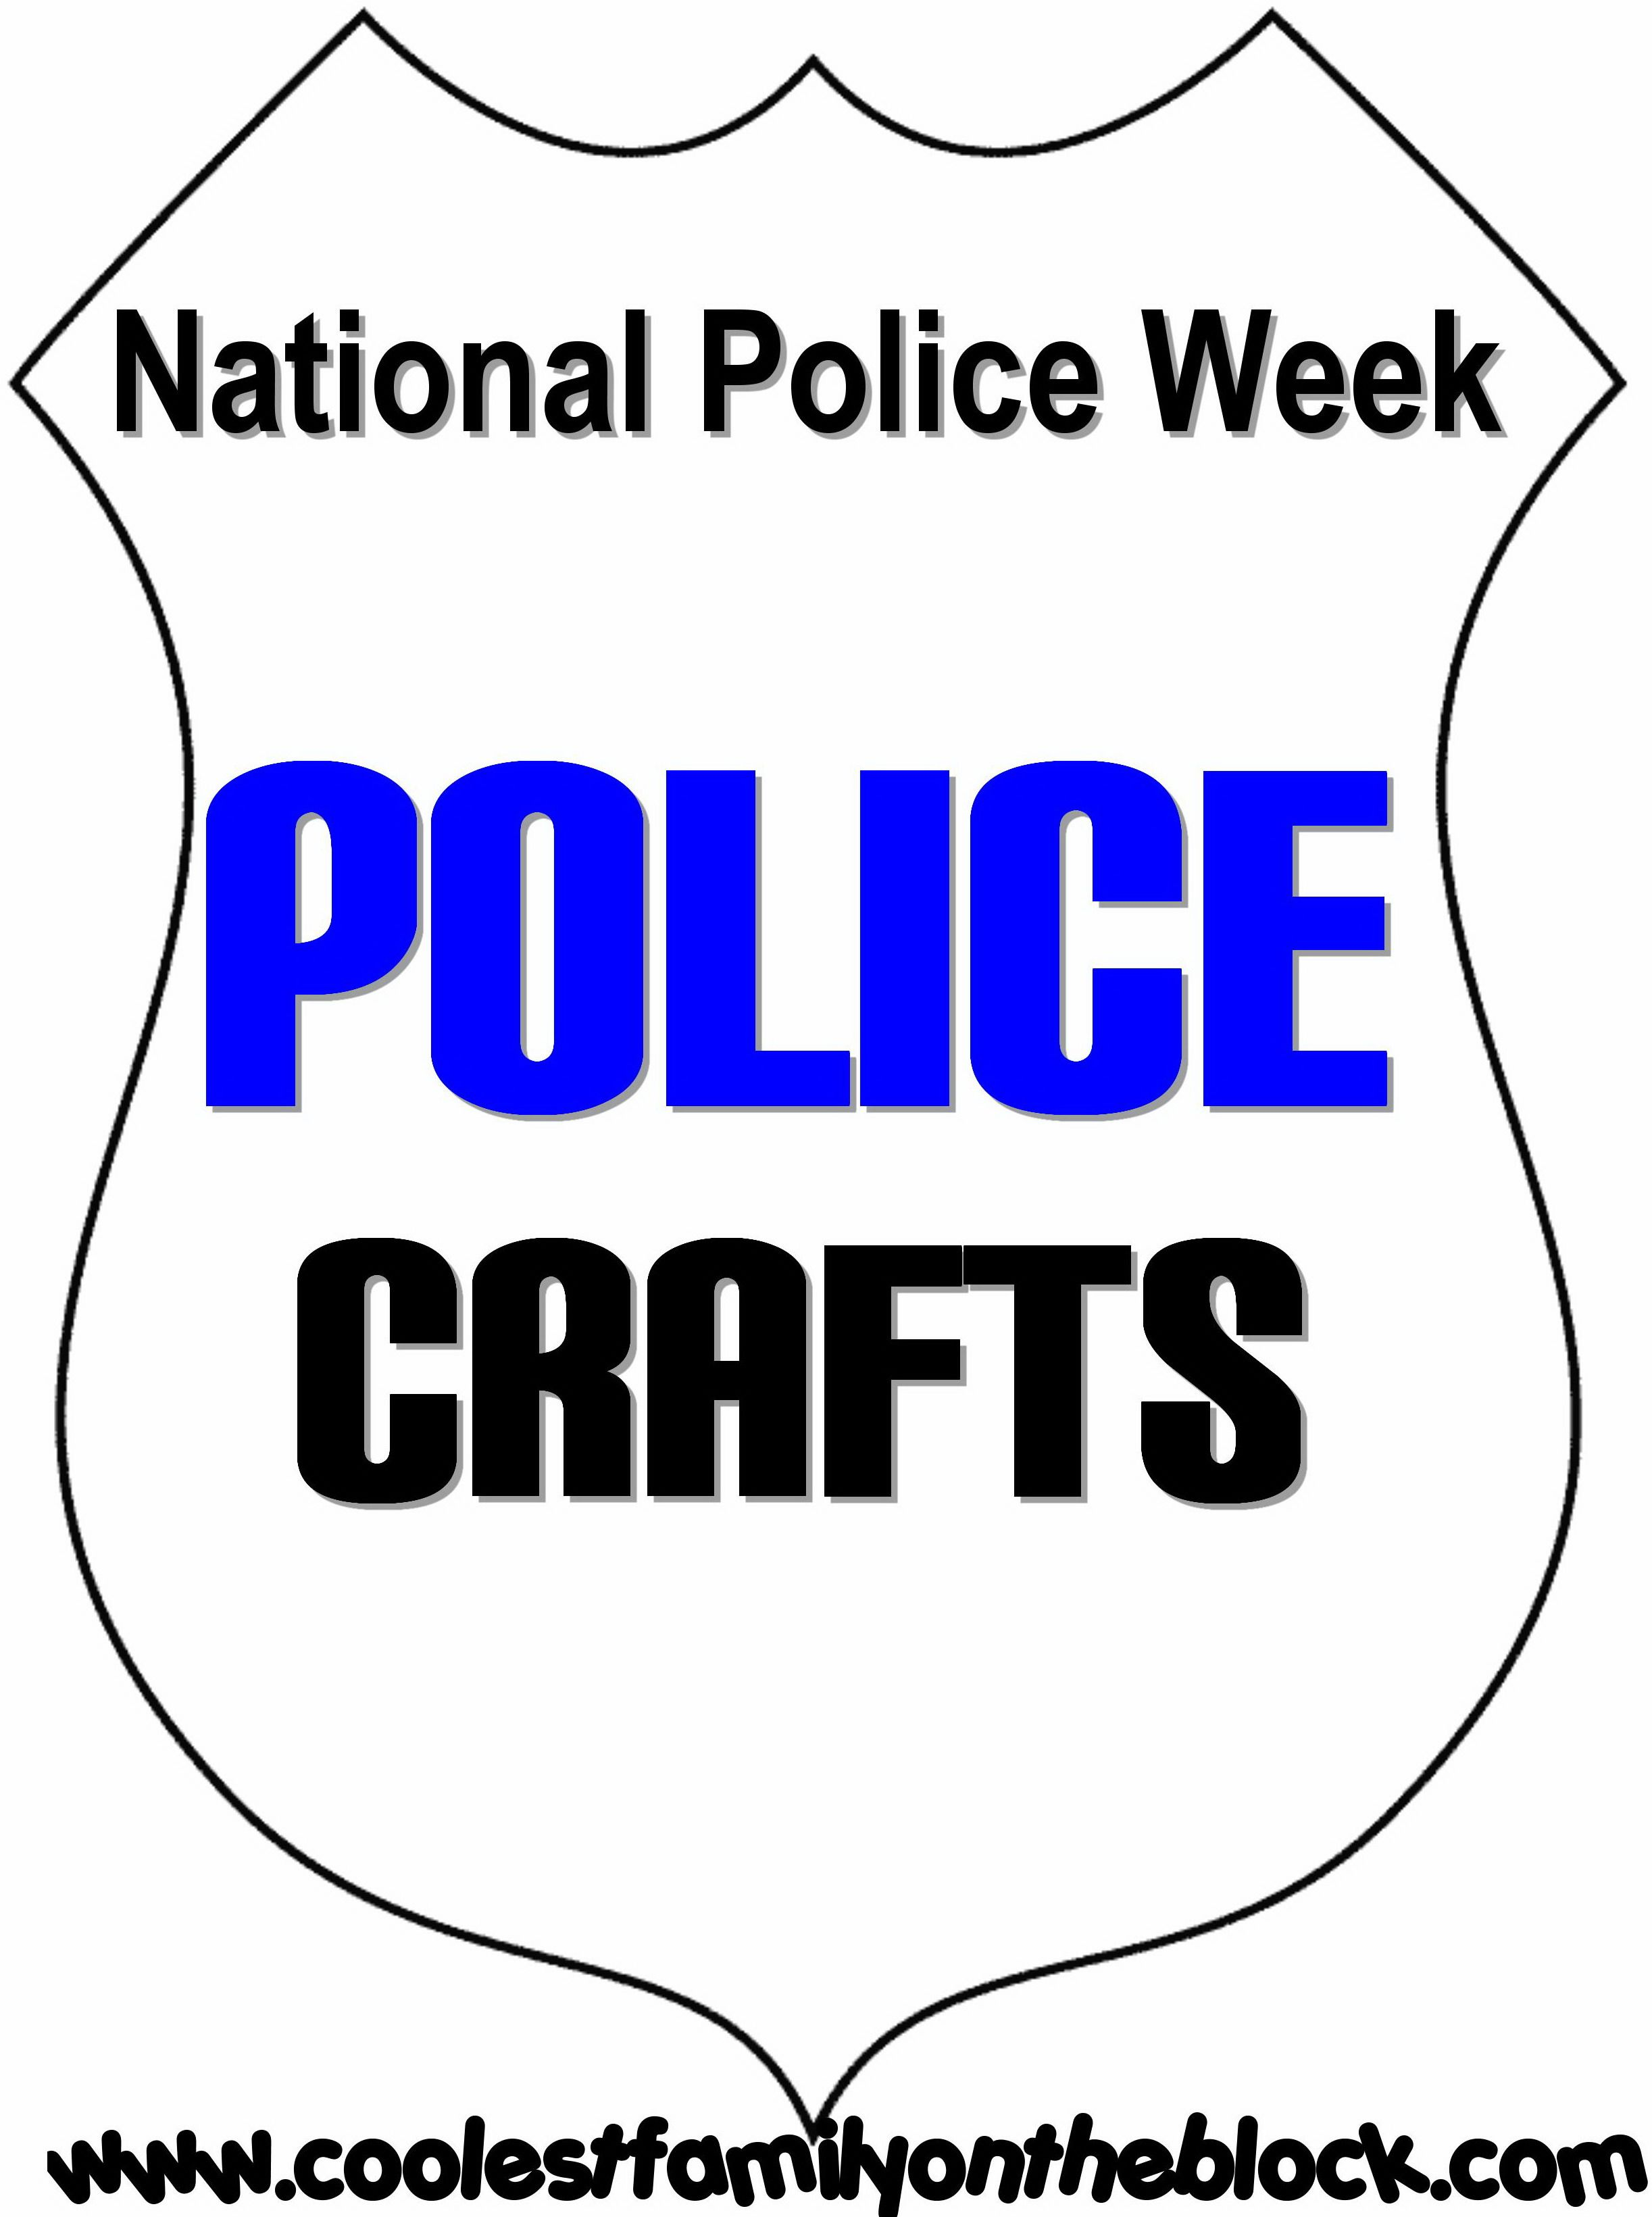 Police Officer Crafts For Kids National Police Week